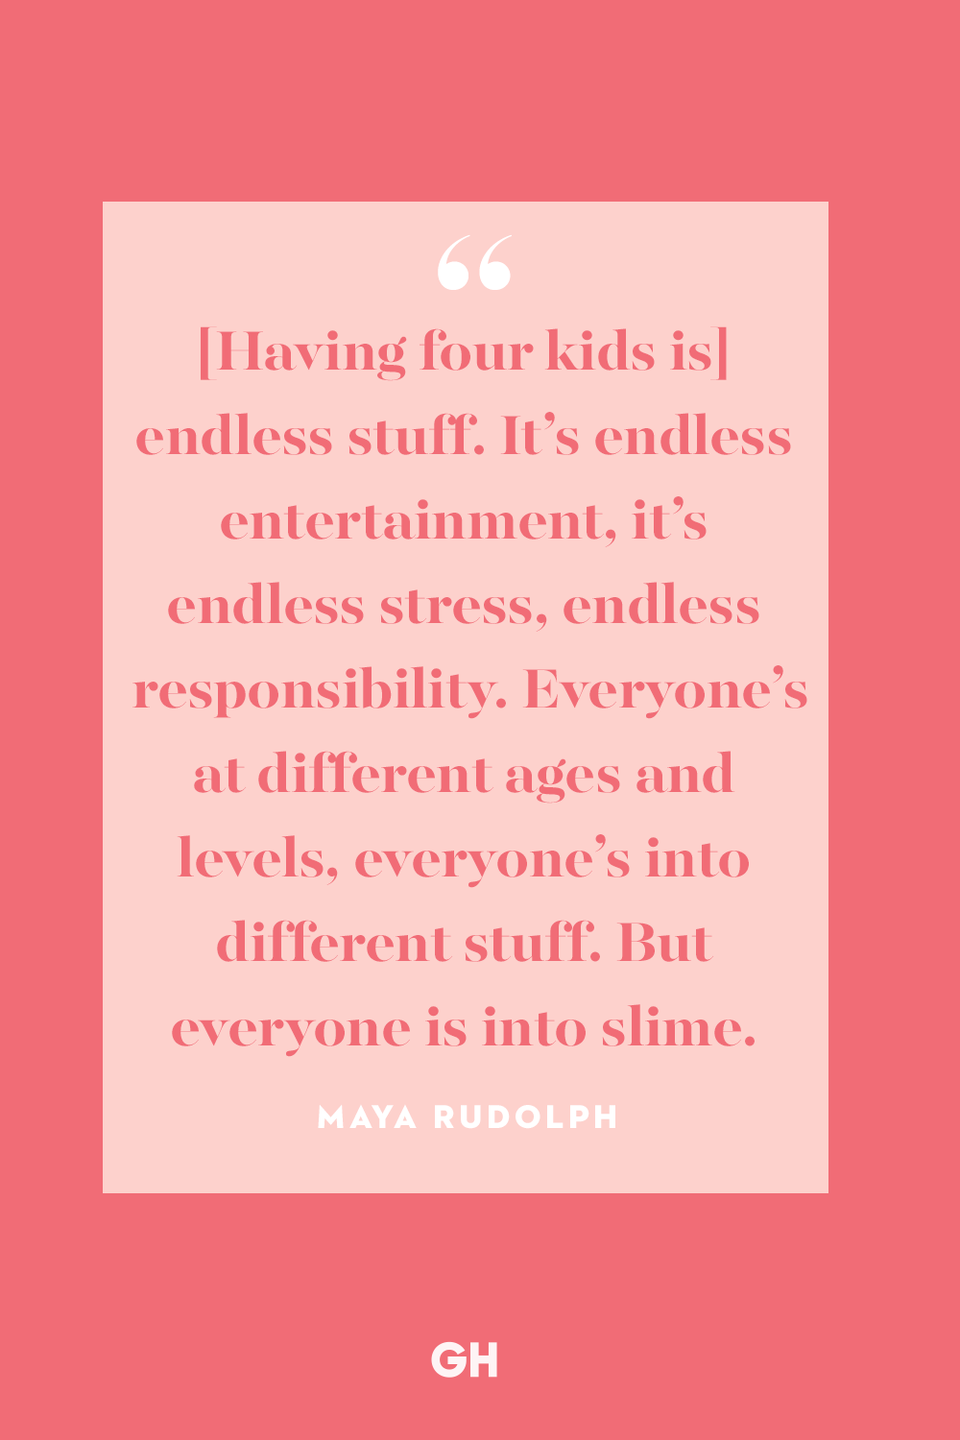 <p>[Having four kids is] endless stuff. It's endless entertainment, it's endless stress, endless responsibility. Everyone's at different ages and levels, everyone's into different stuff. But everyone is into slime. </p>